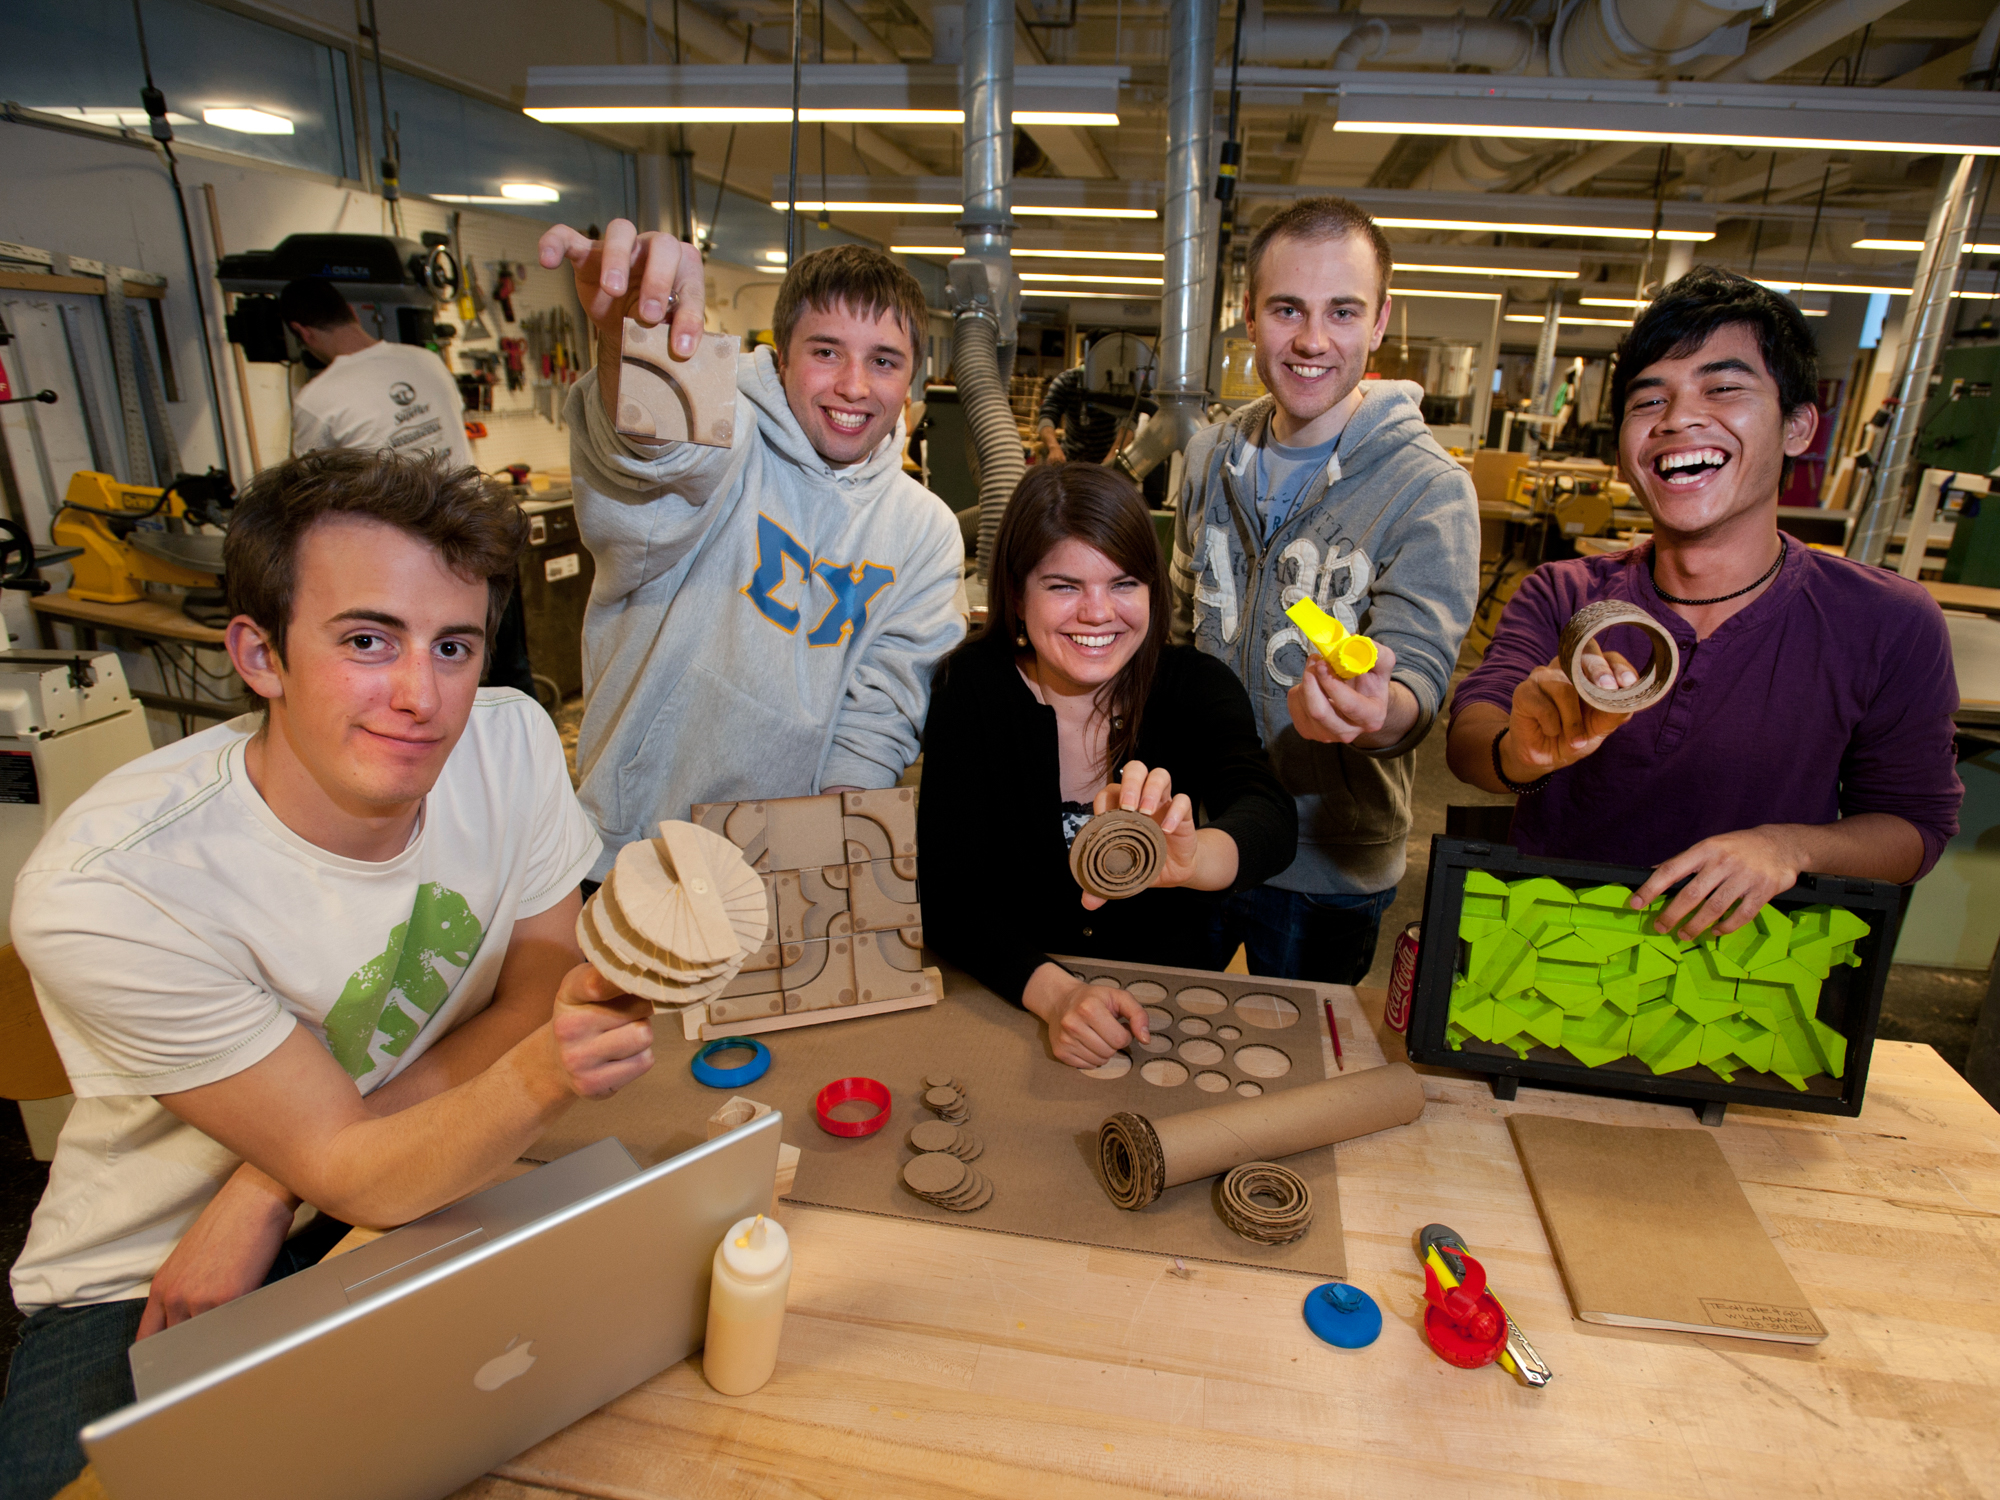 Product design students show off their toy product design prototypes